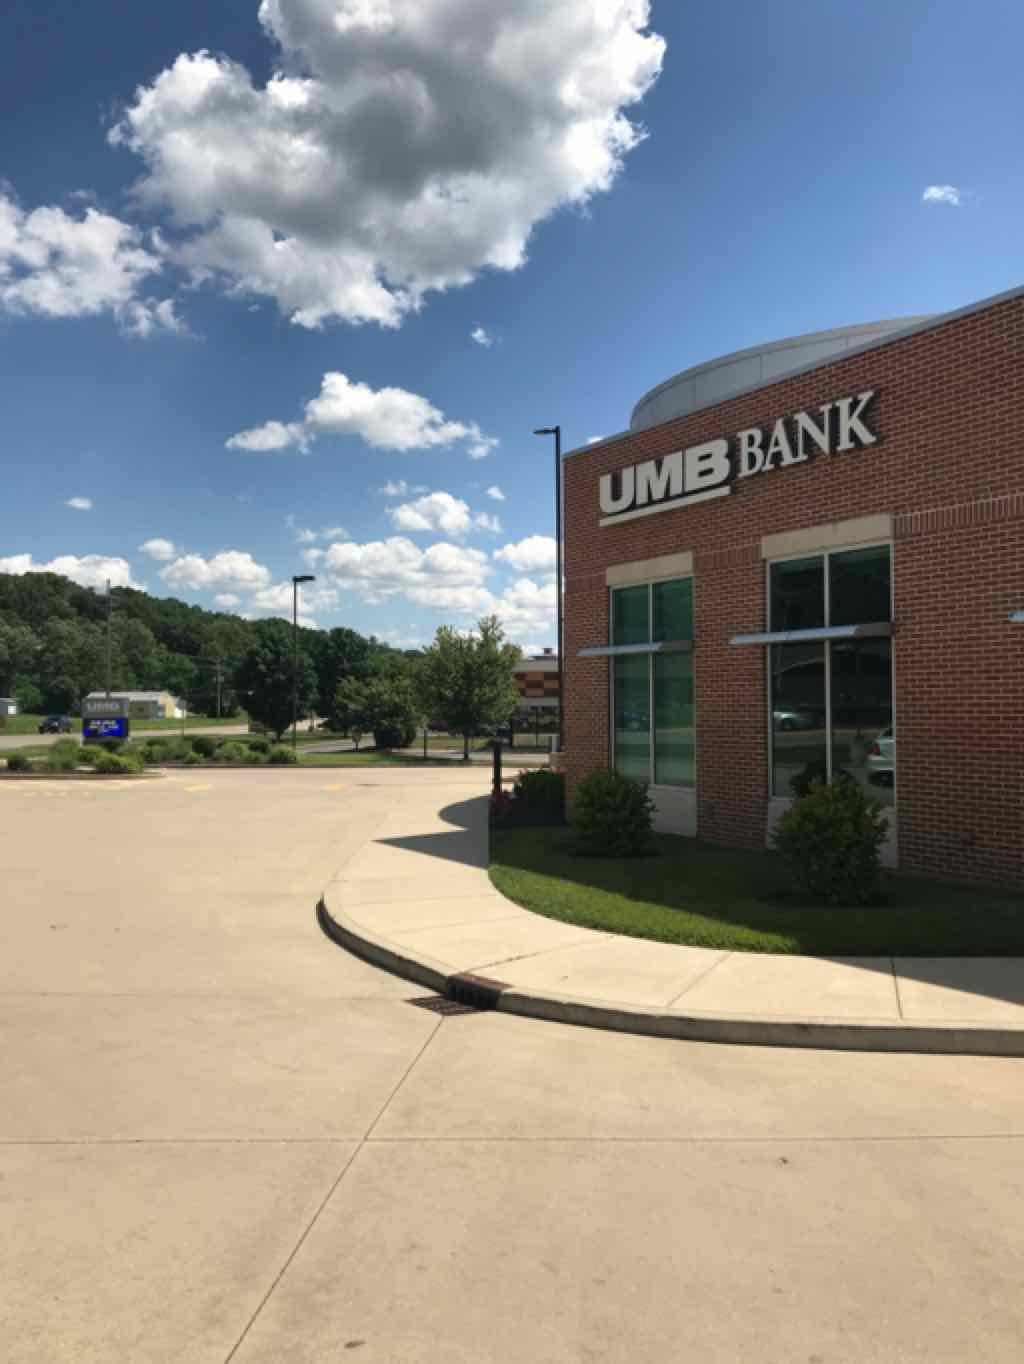 UMB Bank (with drive-thru services) - bank  | Photo 6 of 7 | Address: 401 N Bluff Rd, Collinsville, IL 62234, USA | Phone: (618) 346-1499